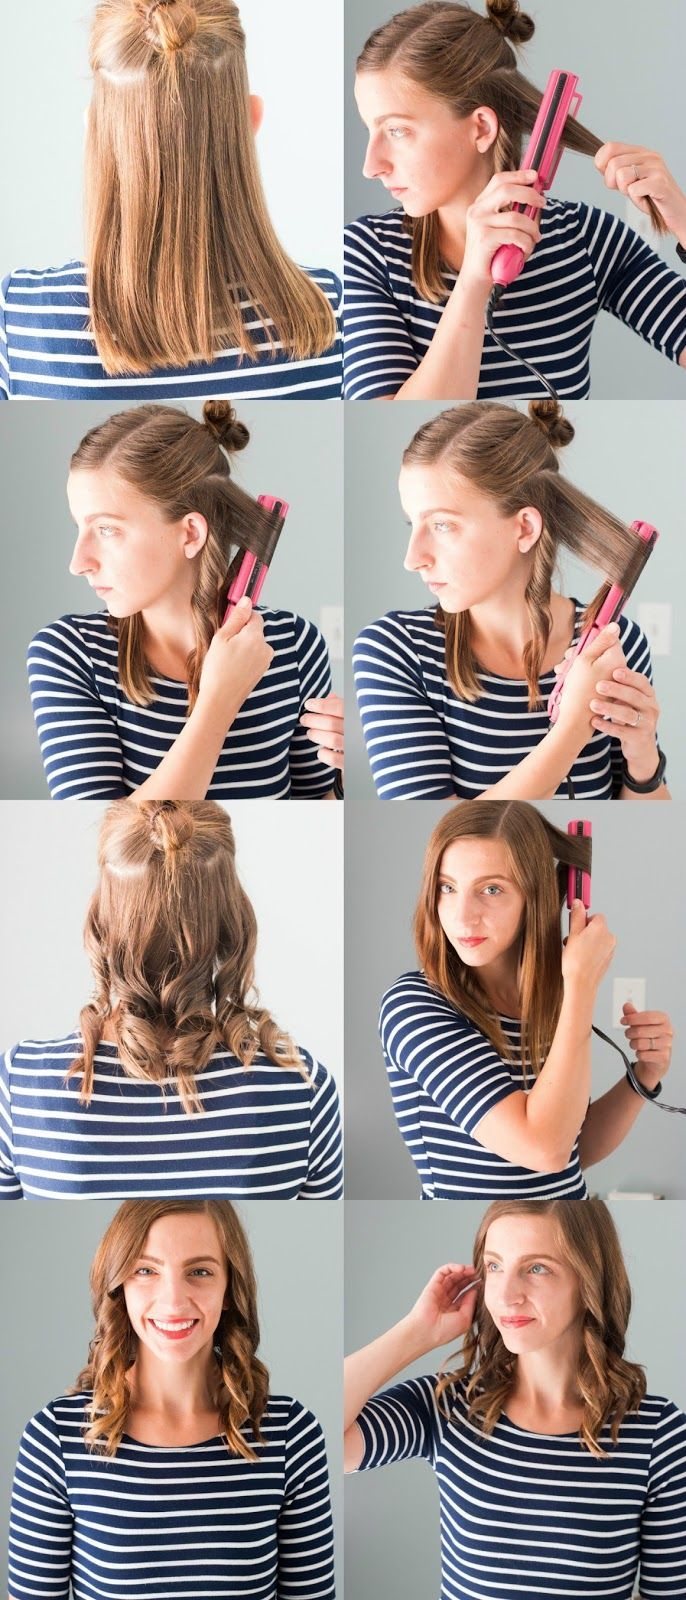 85317609db8fcd4eaeef79dd96135398 - How To Get Great Curls With A Flat Iron